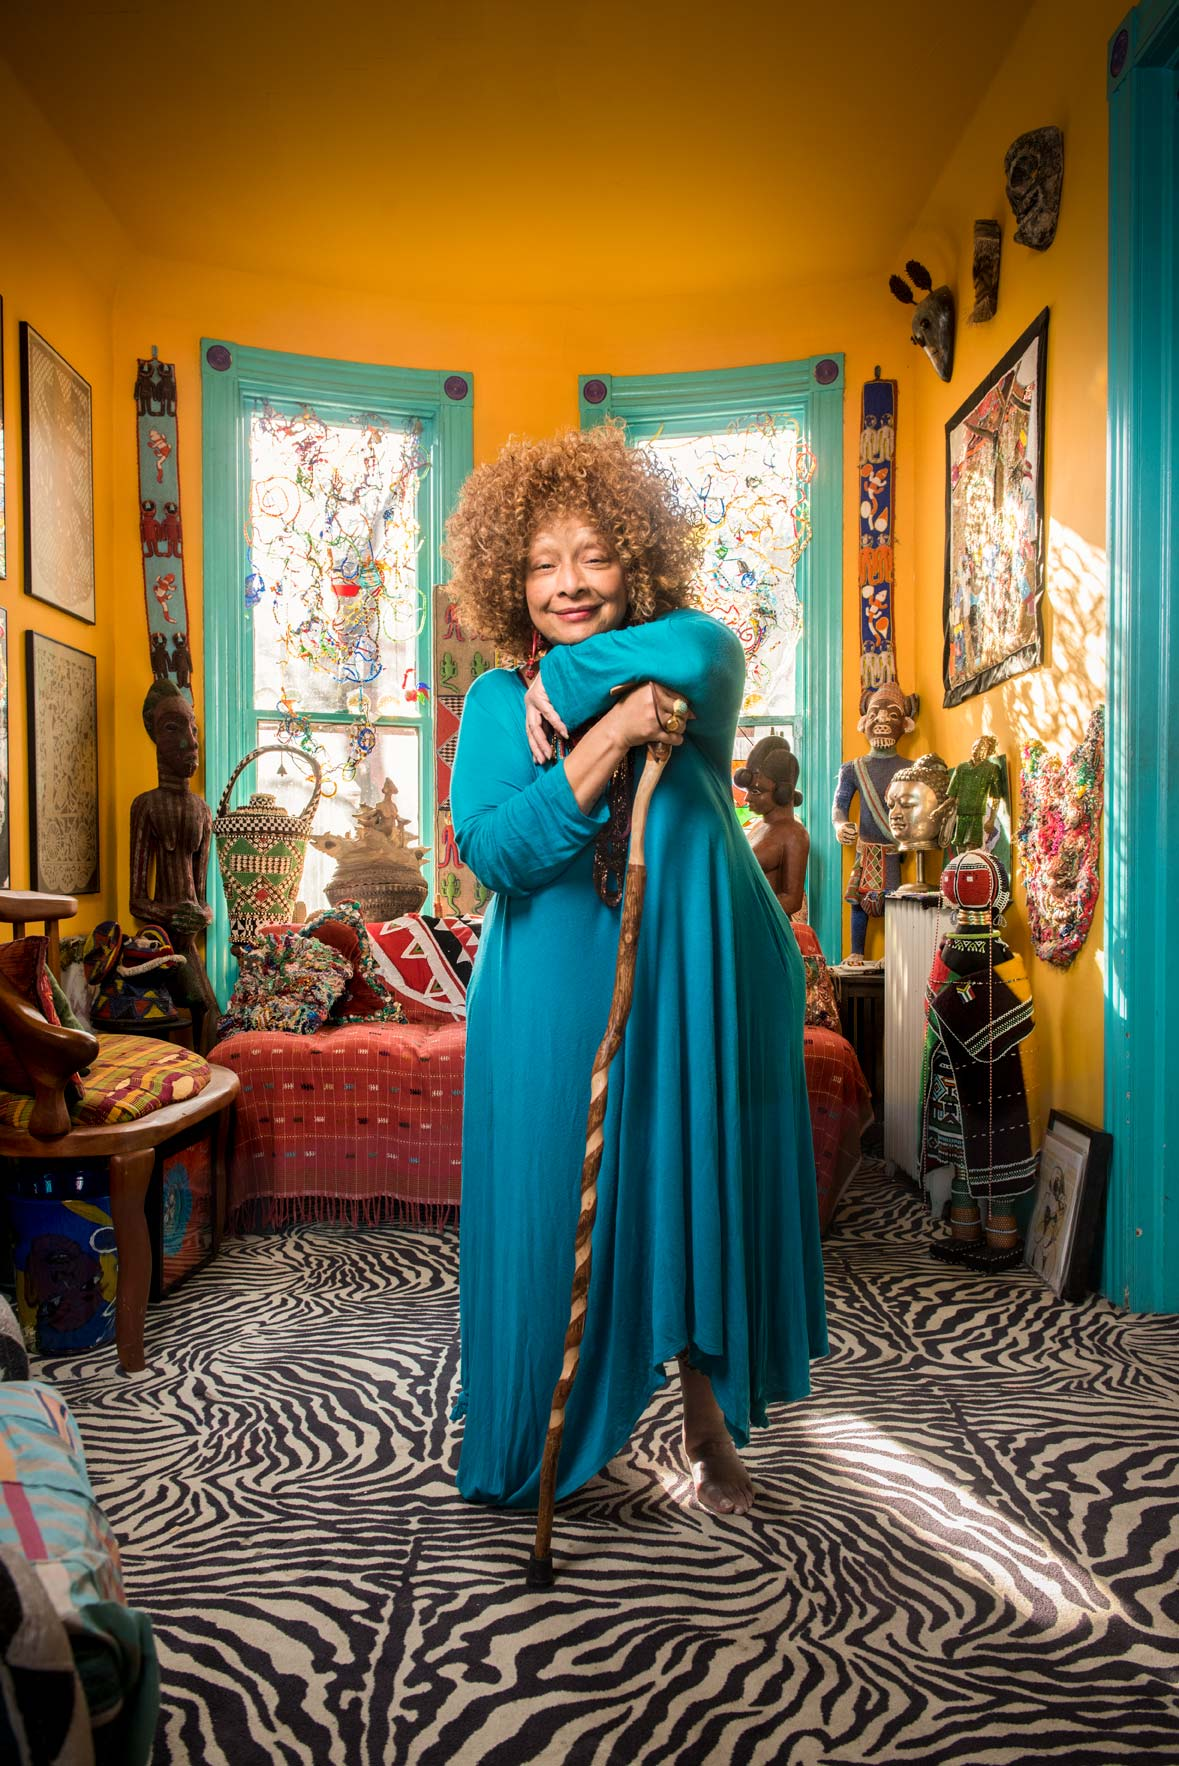 Artist and MacArthur Genius Grant recipient, Joyce Scott